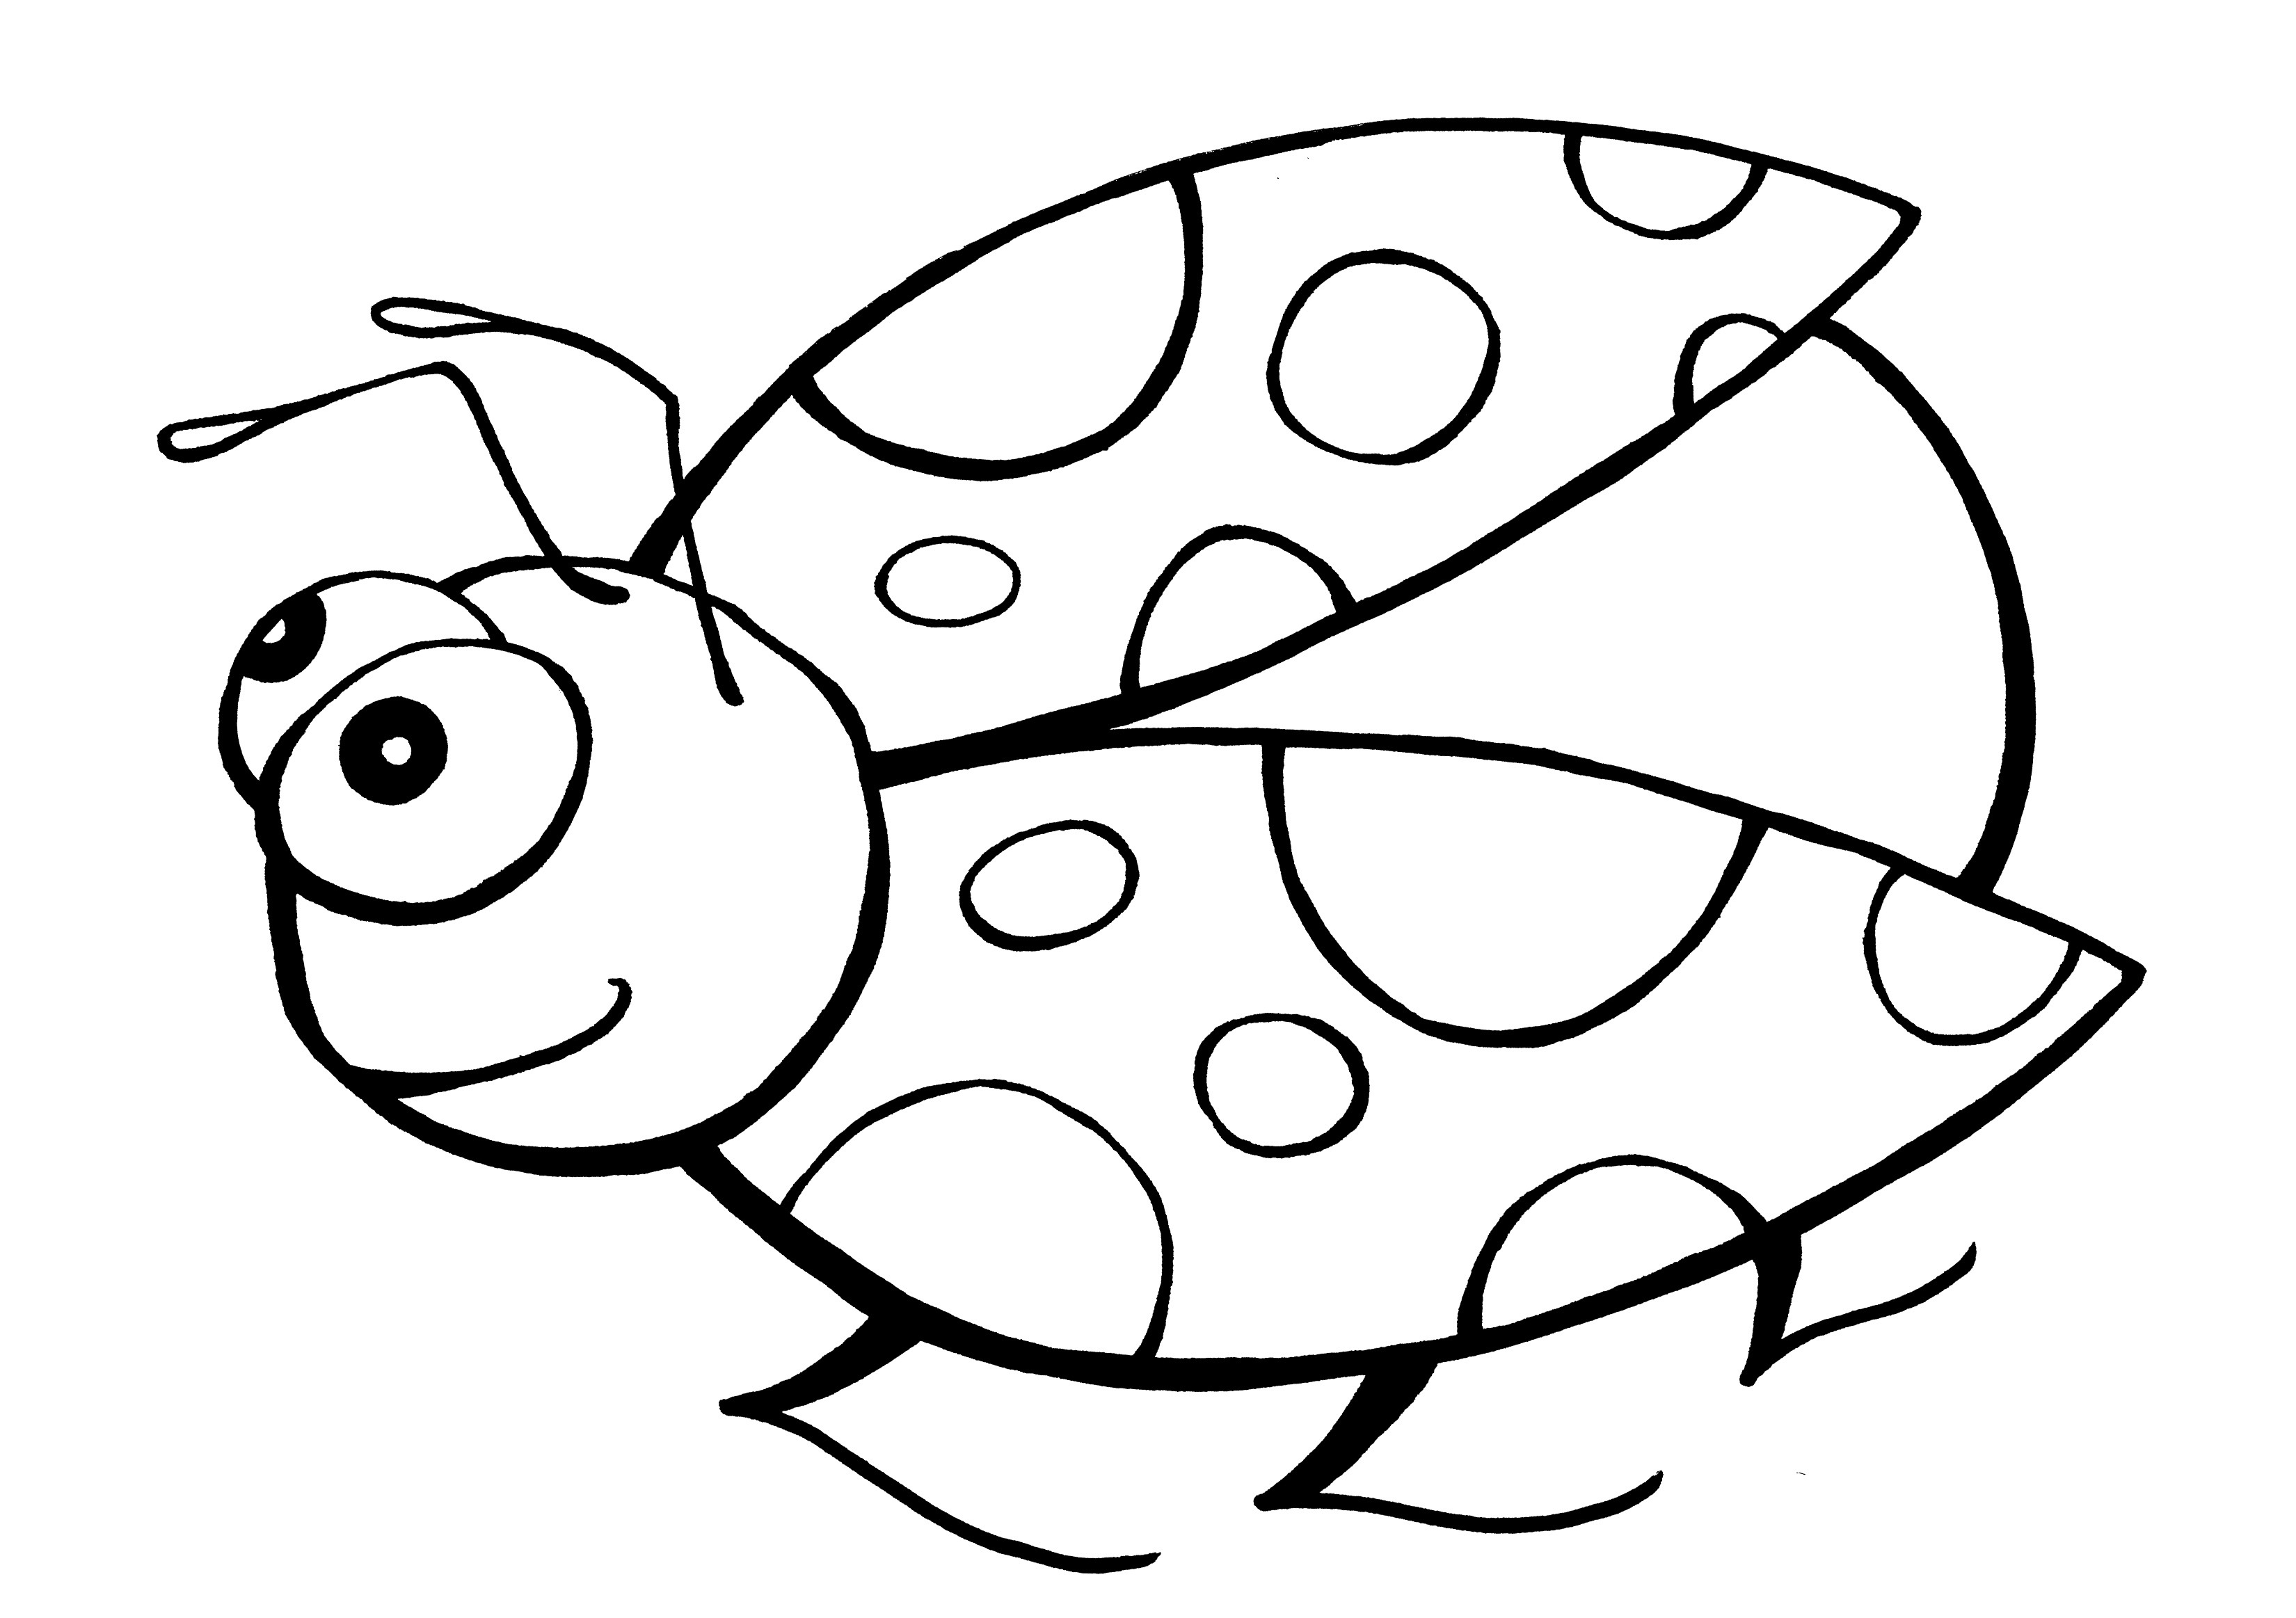 colouring ladybird ladybug coloring page printable spring coloring ebook colouring ladybird